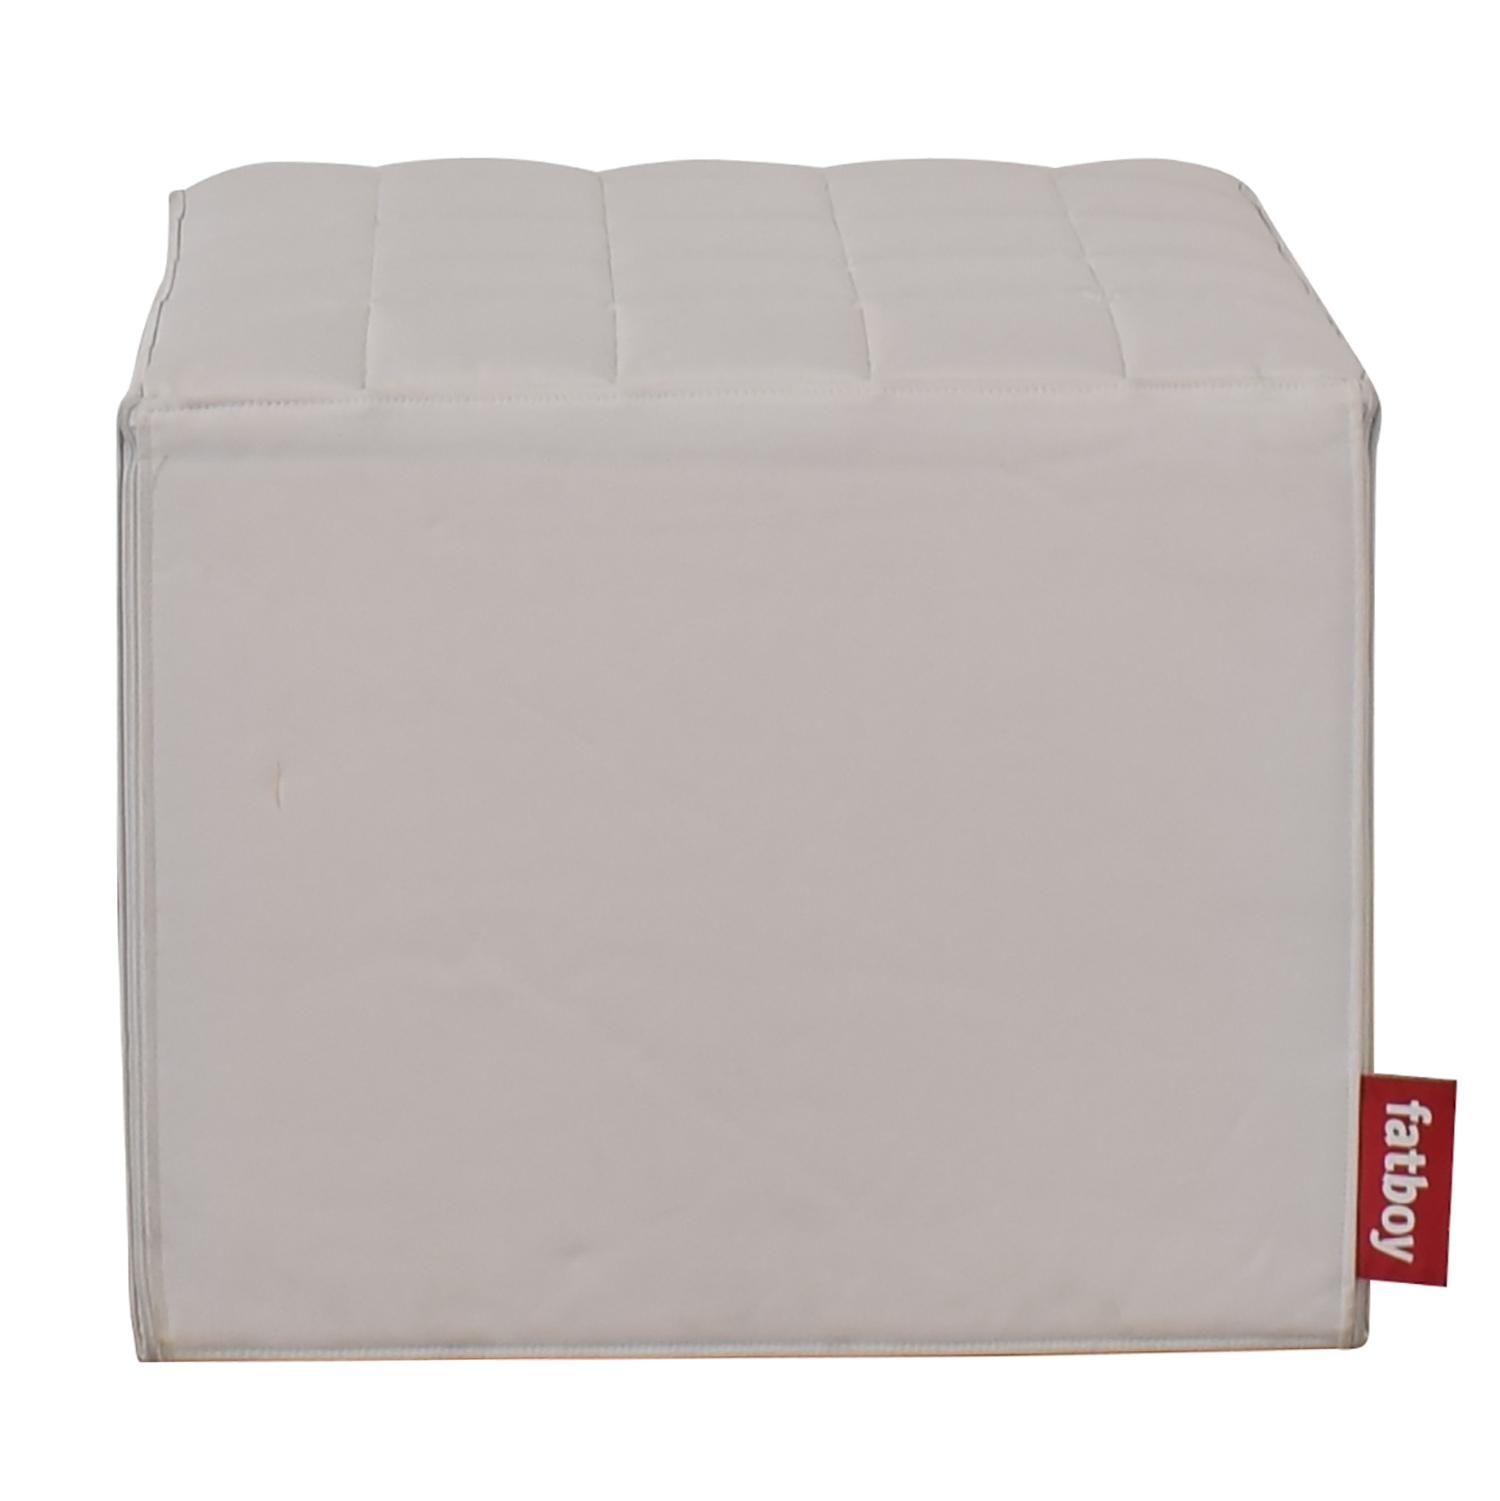 Fatboy Fatboy First Block Avenue Pouf dimensions